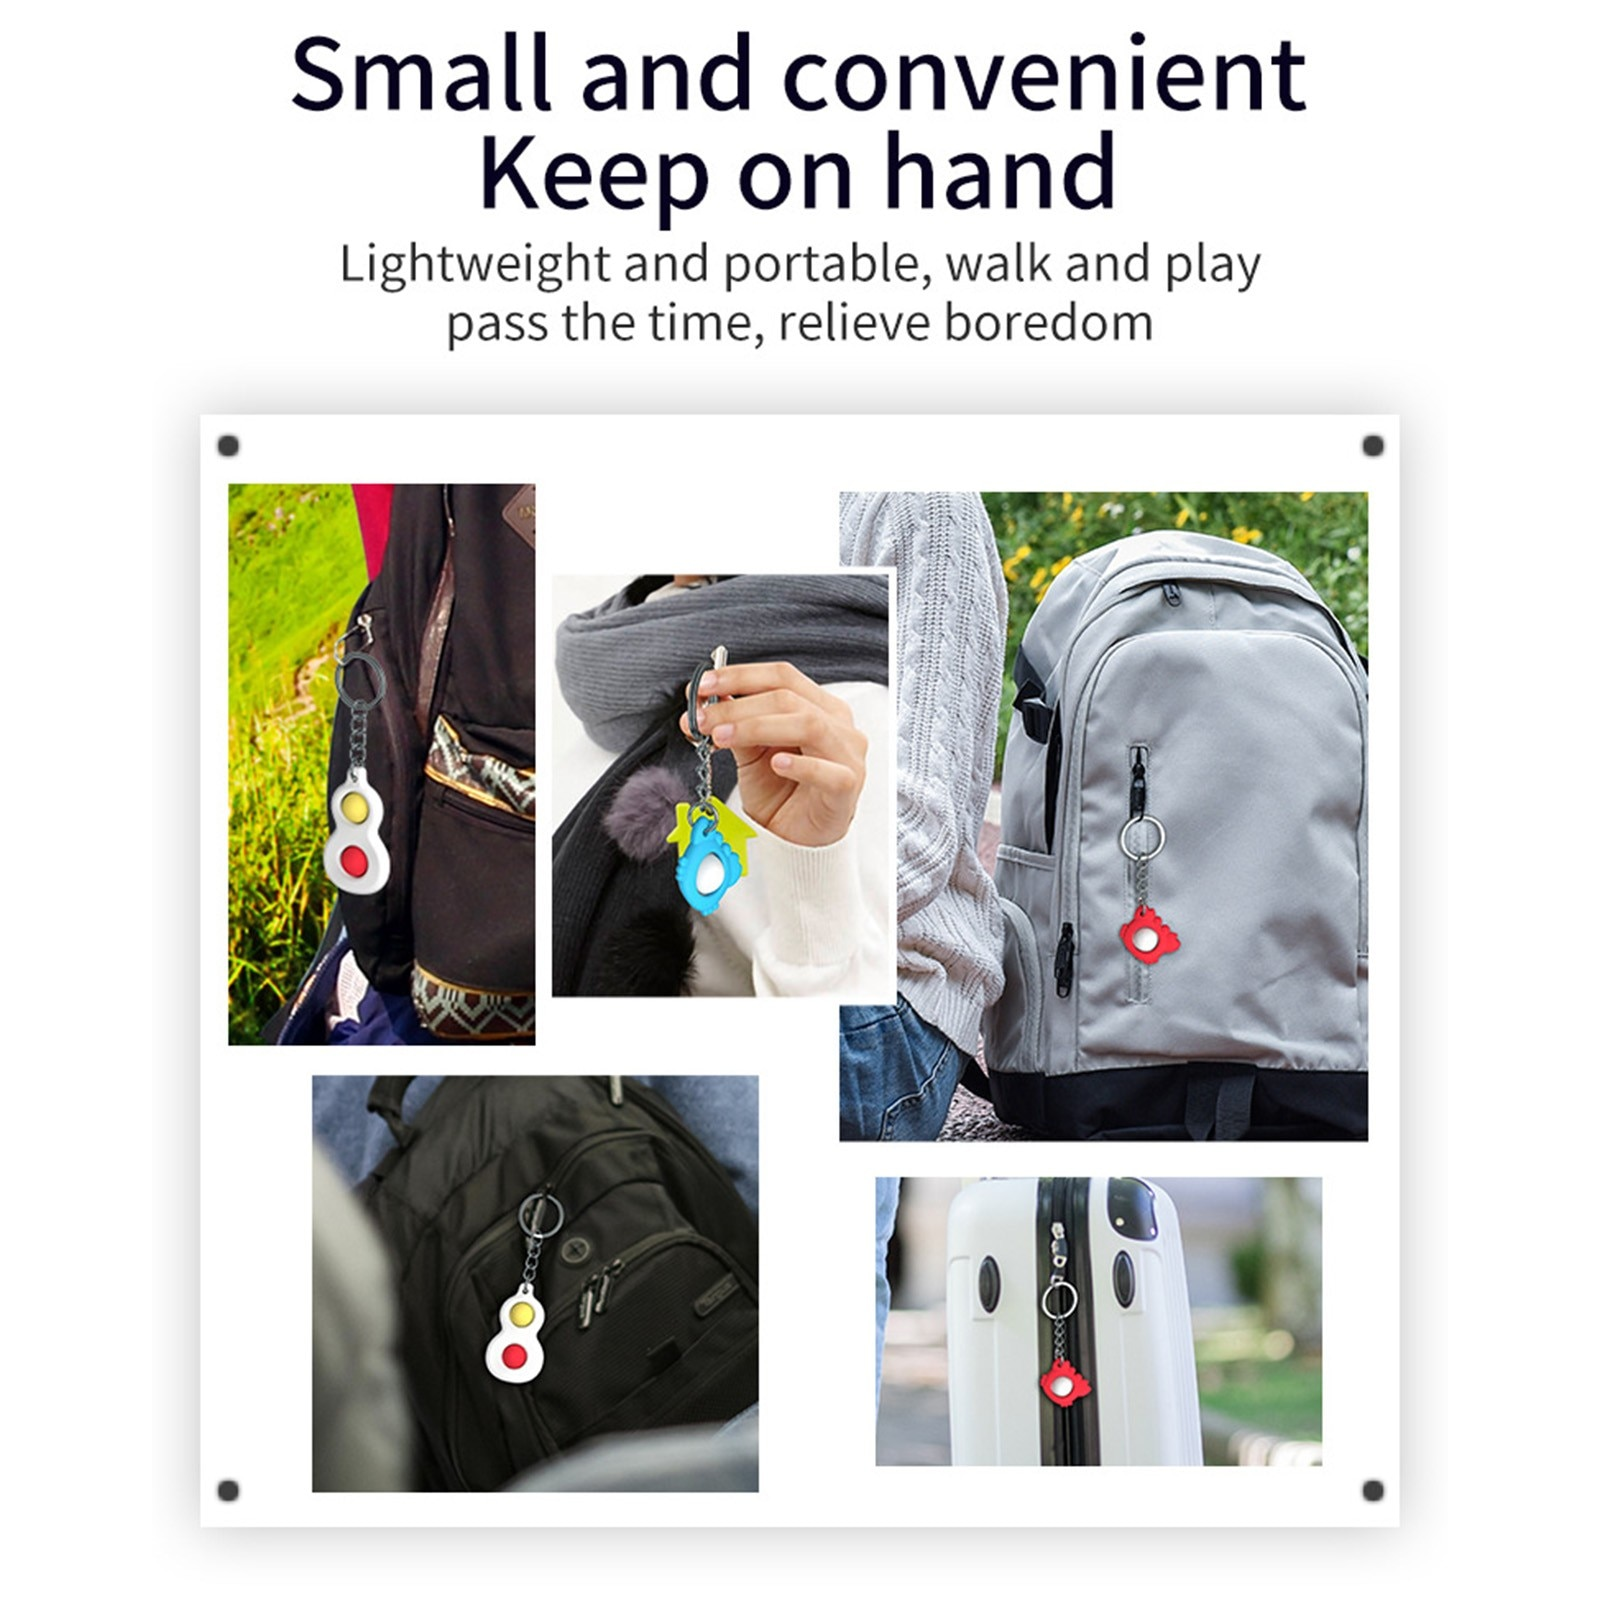 Decompression toy simple dimple keychain toy adult children stress relief hand toy anxiety autism toy 3PC мягкие игрушки 40* enlarge